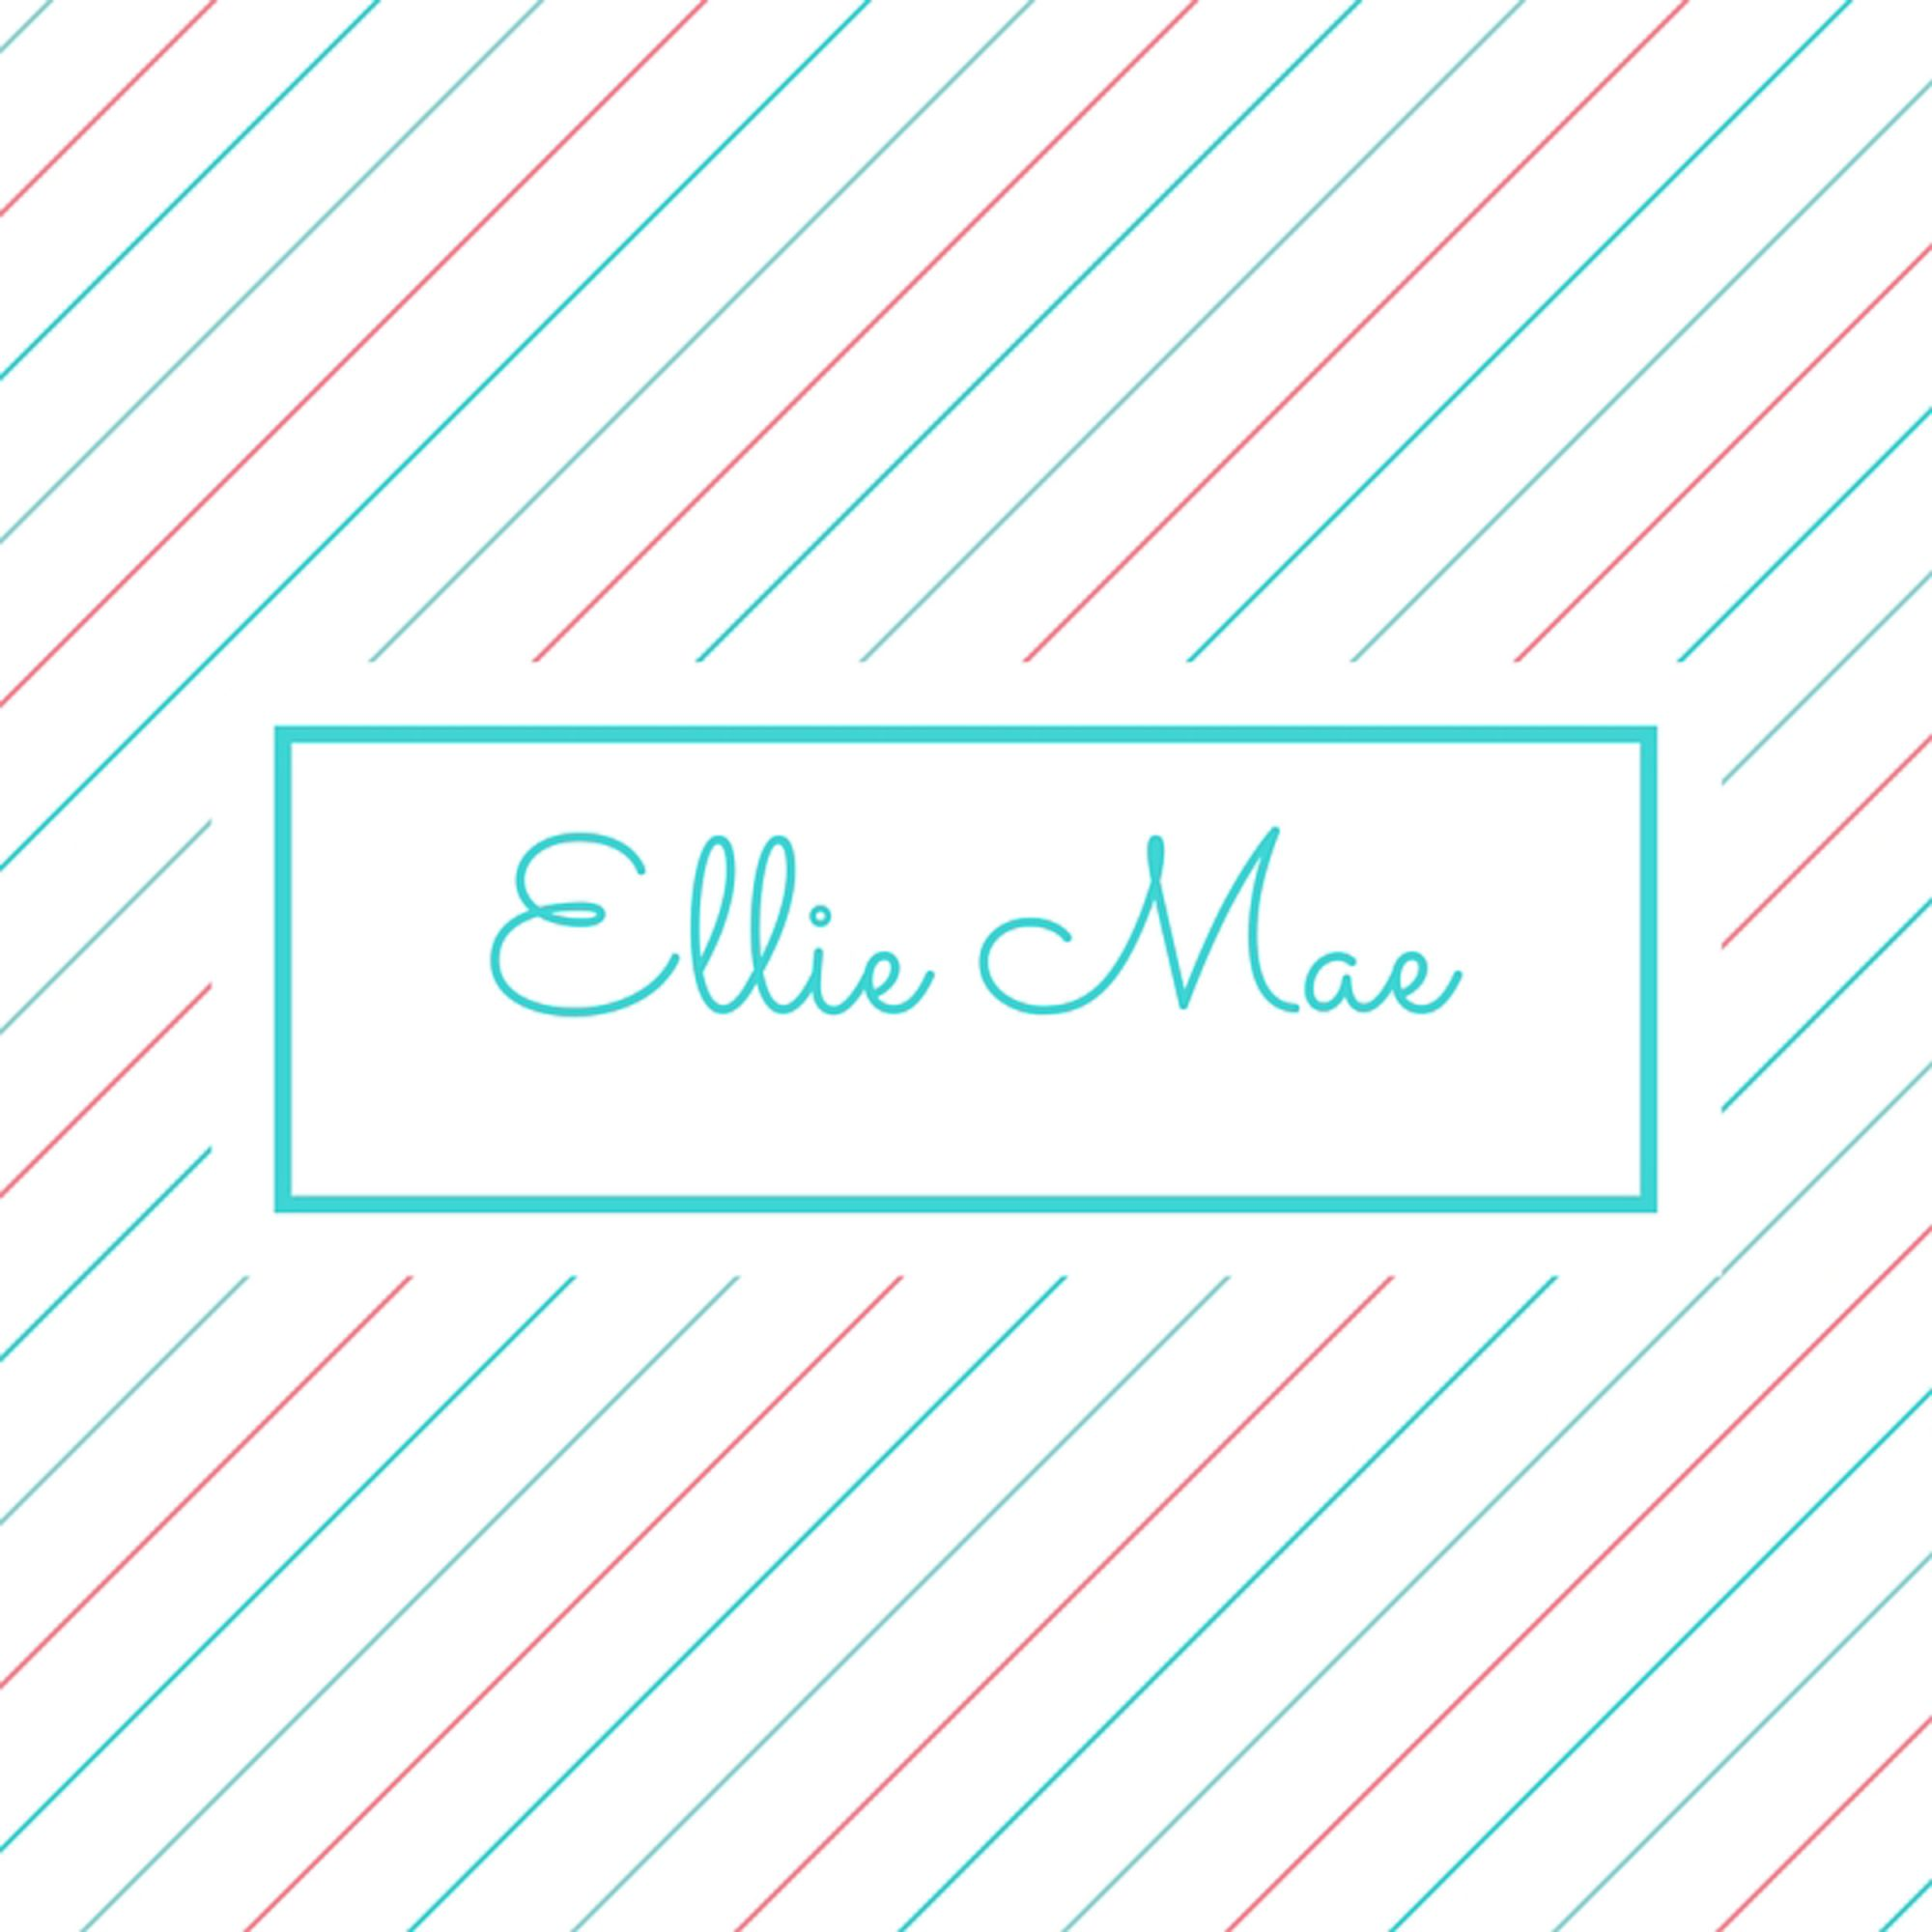 Double Name: Ellie Mae